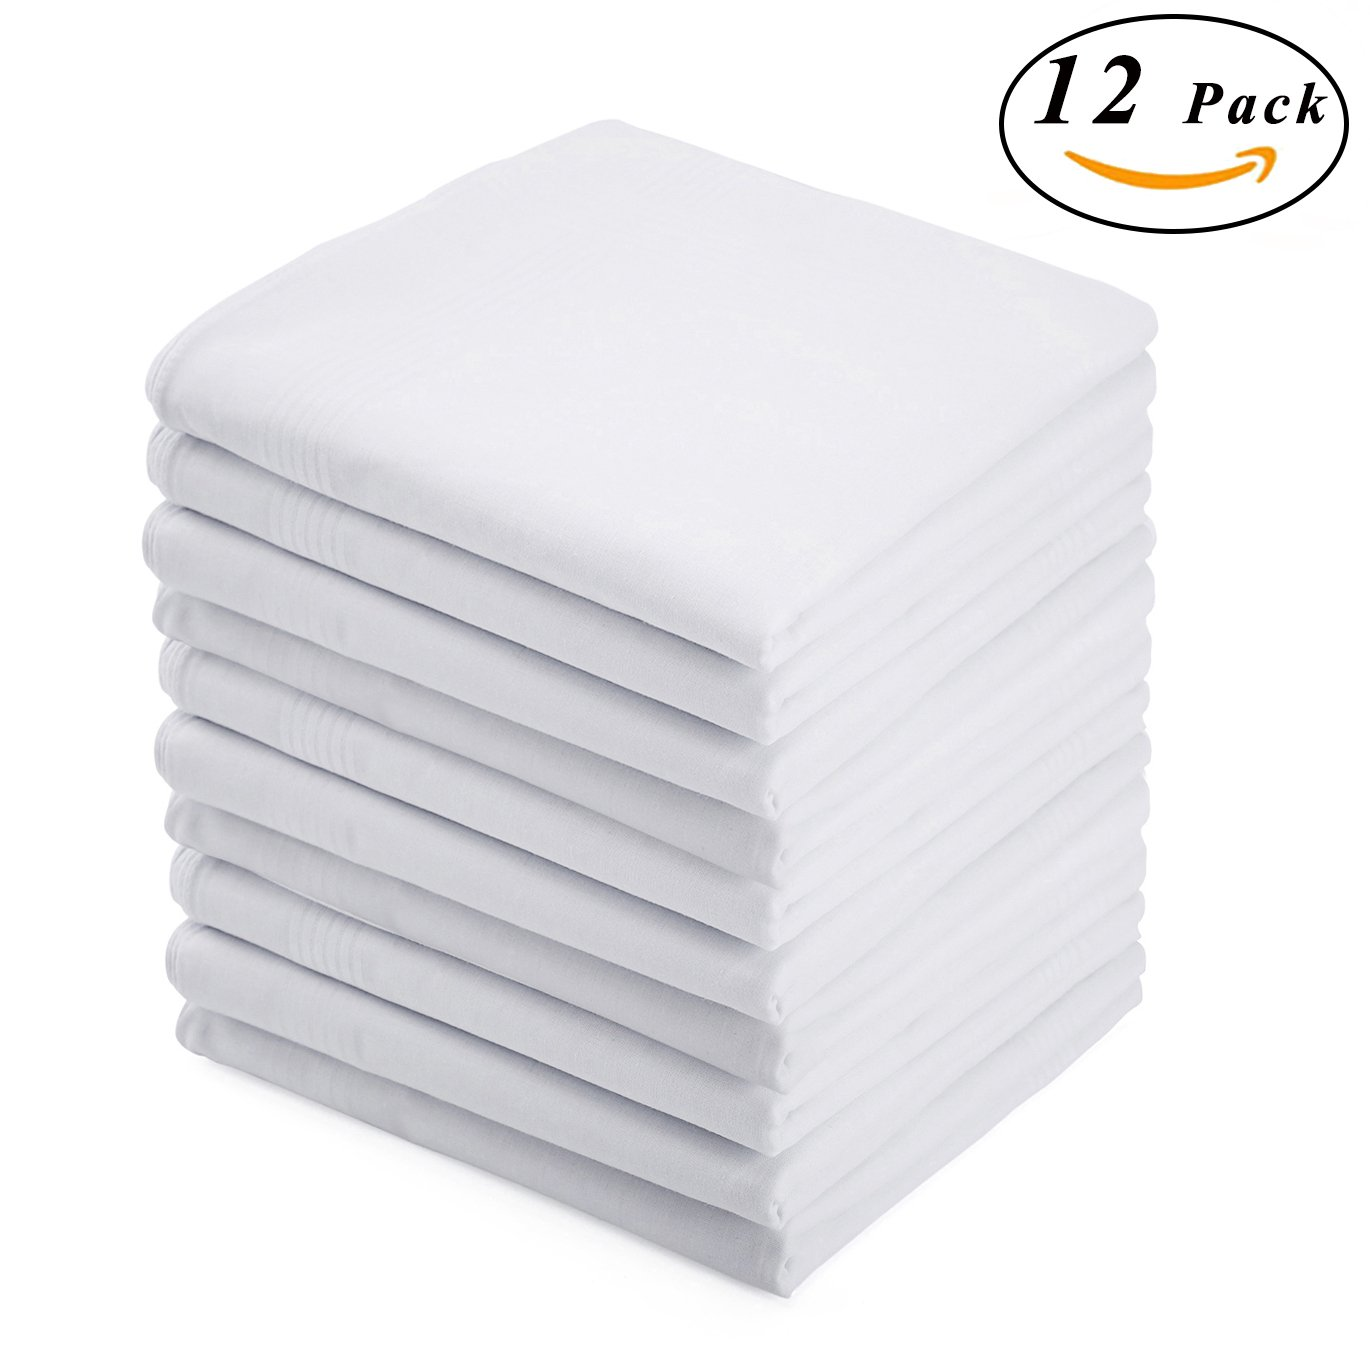 BoosKey Handkerchiefs Mens Cotton Soft, White Hankies Large and Absorbent for Men - 12 Pack by BoosKey (Image #1)